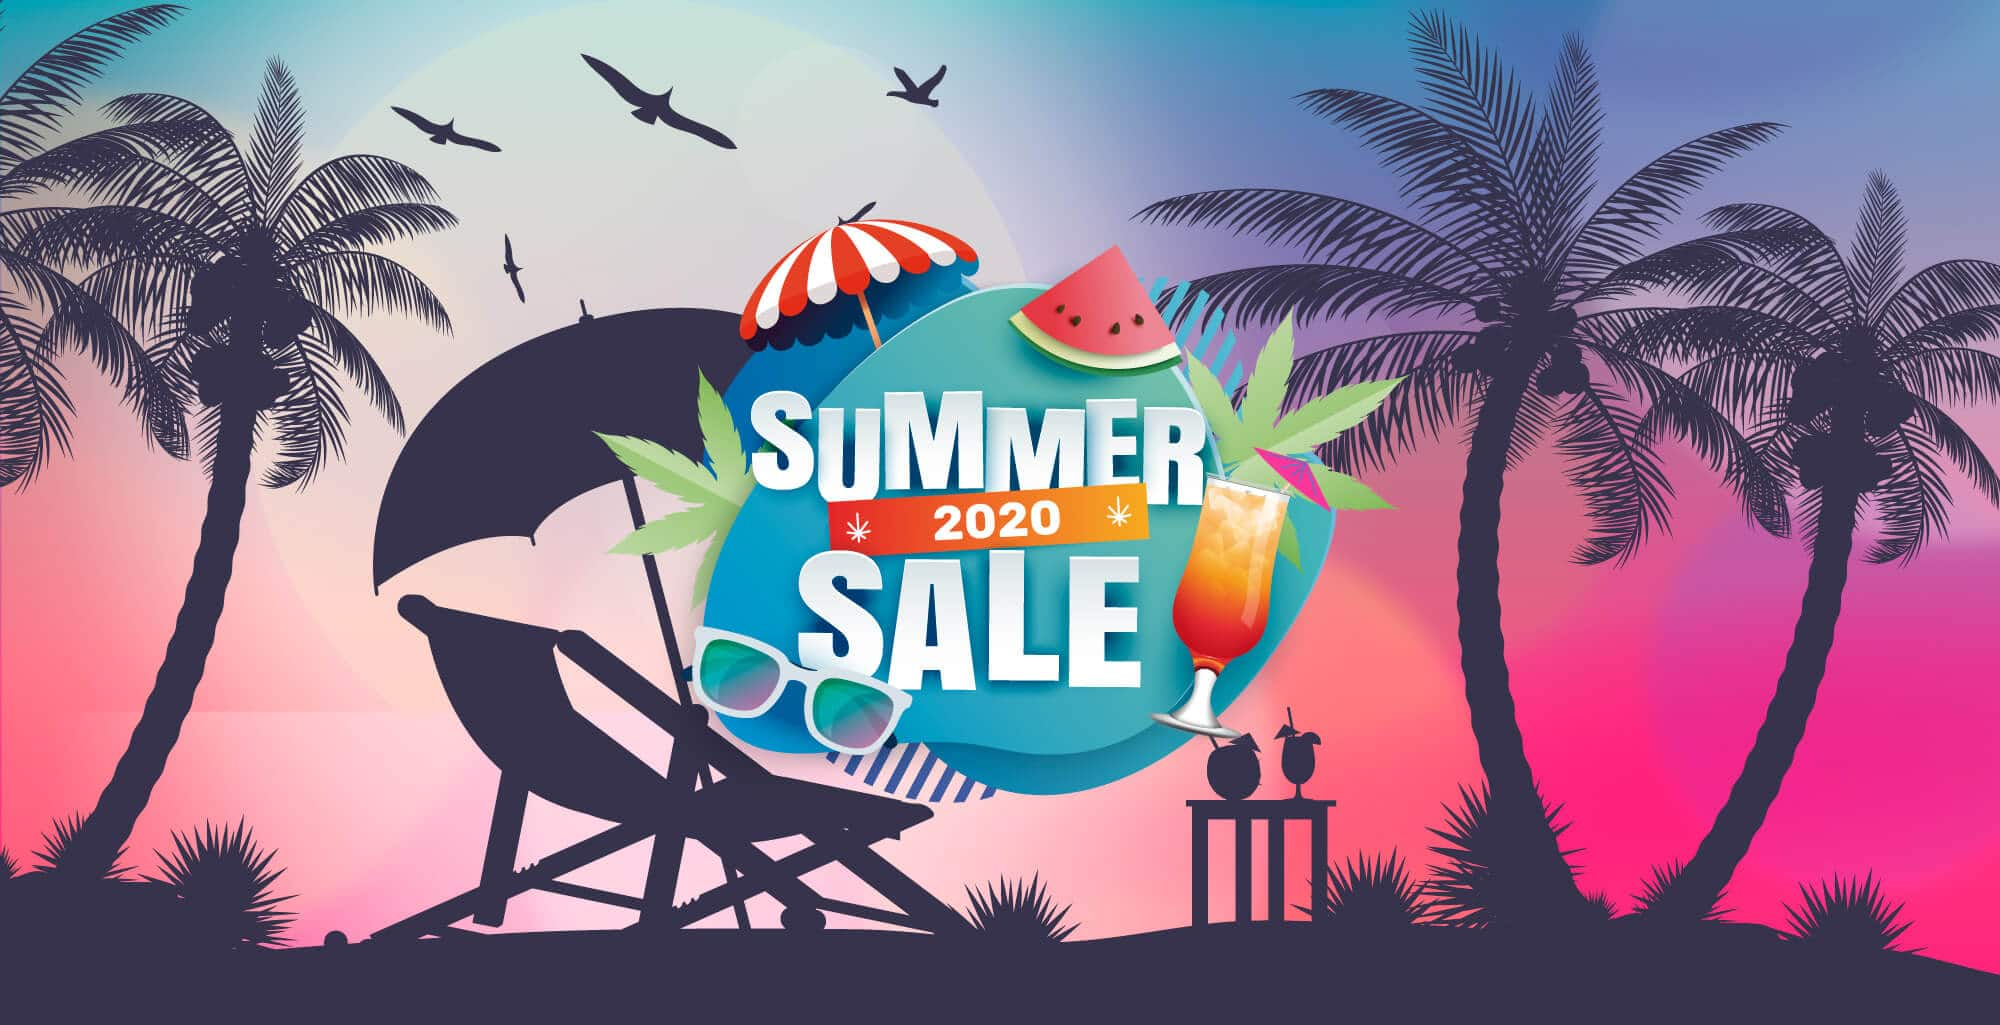 Weedzy Summer Sale 2020